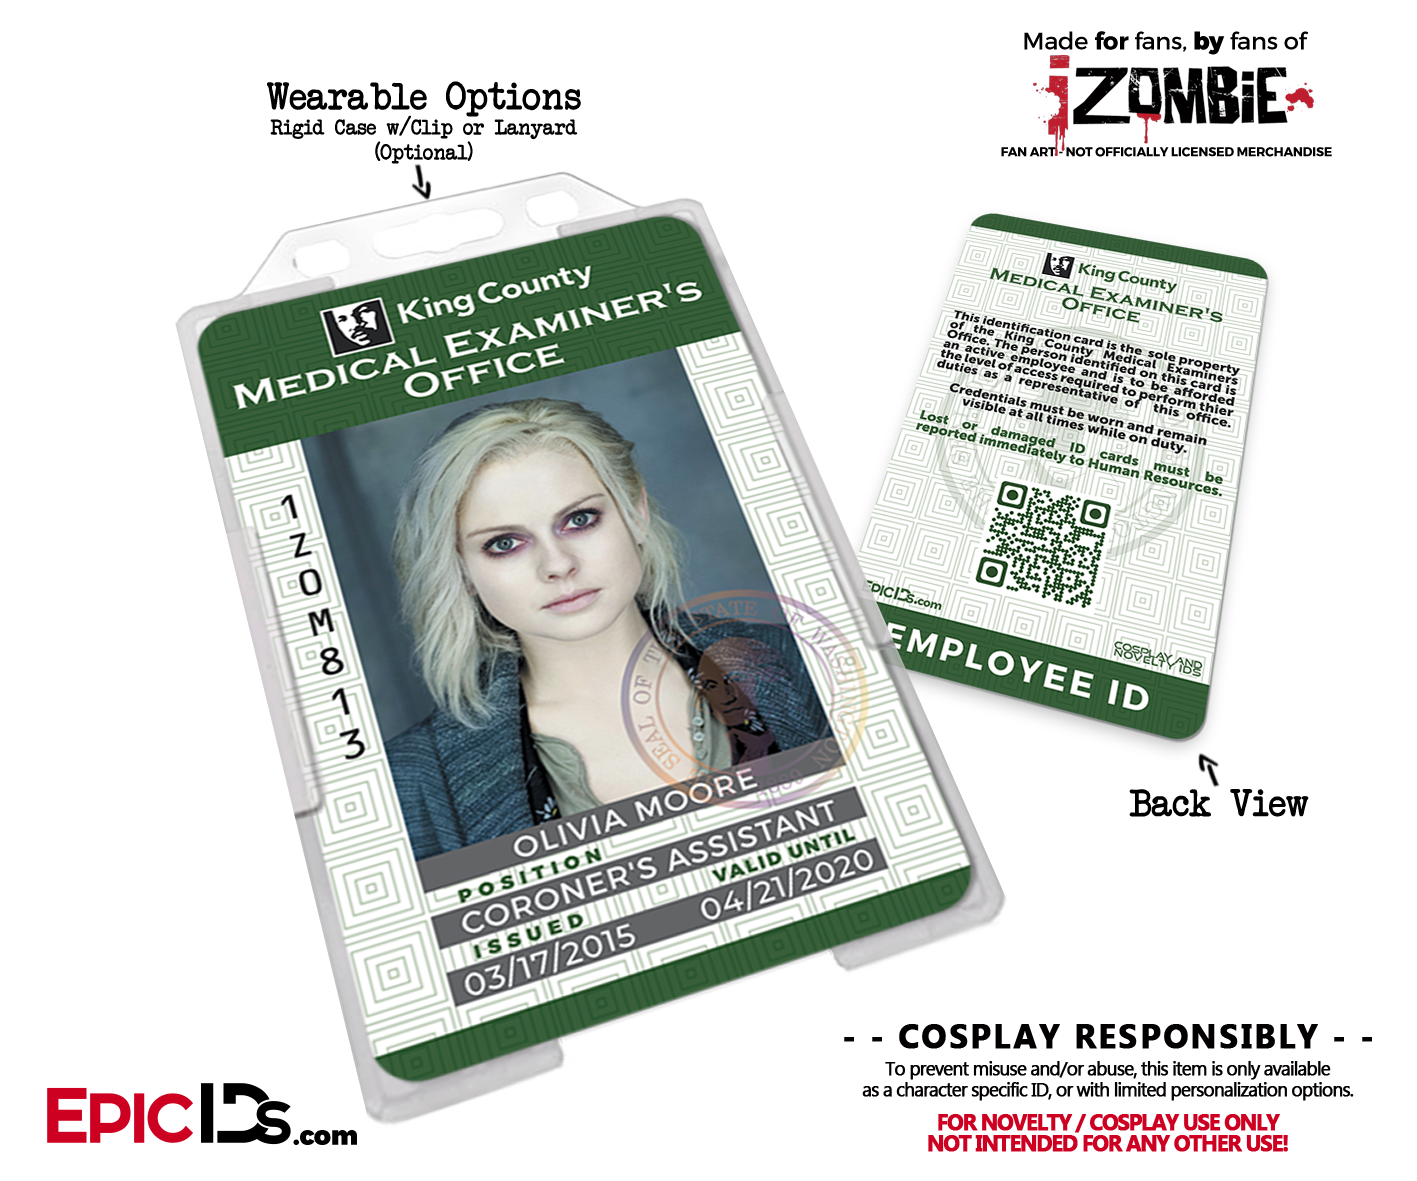 'izombie' Office Cosplay Medical Examiners County - Ids King t Epic Employee